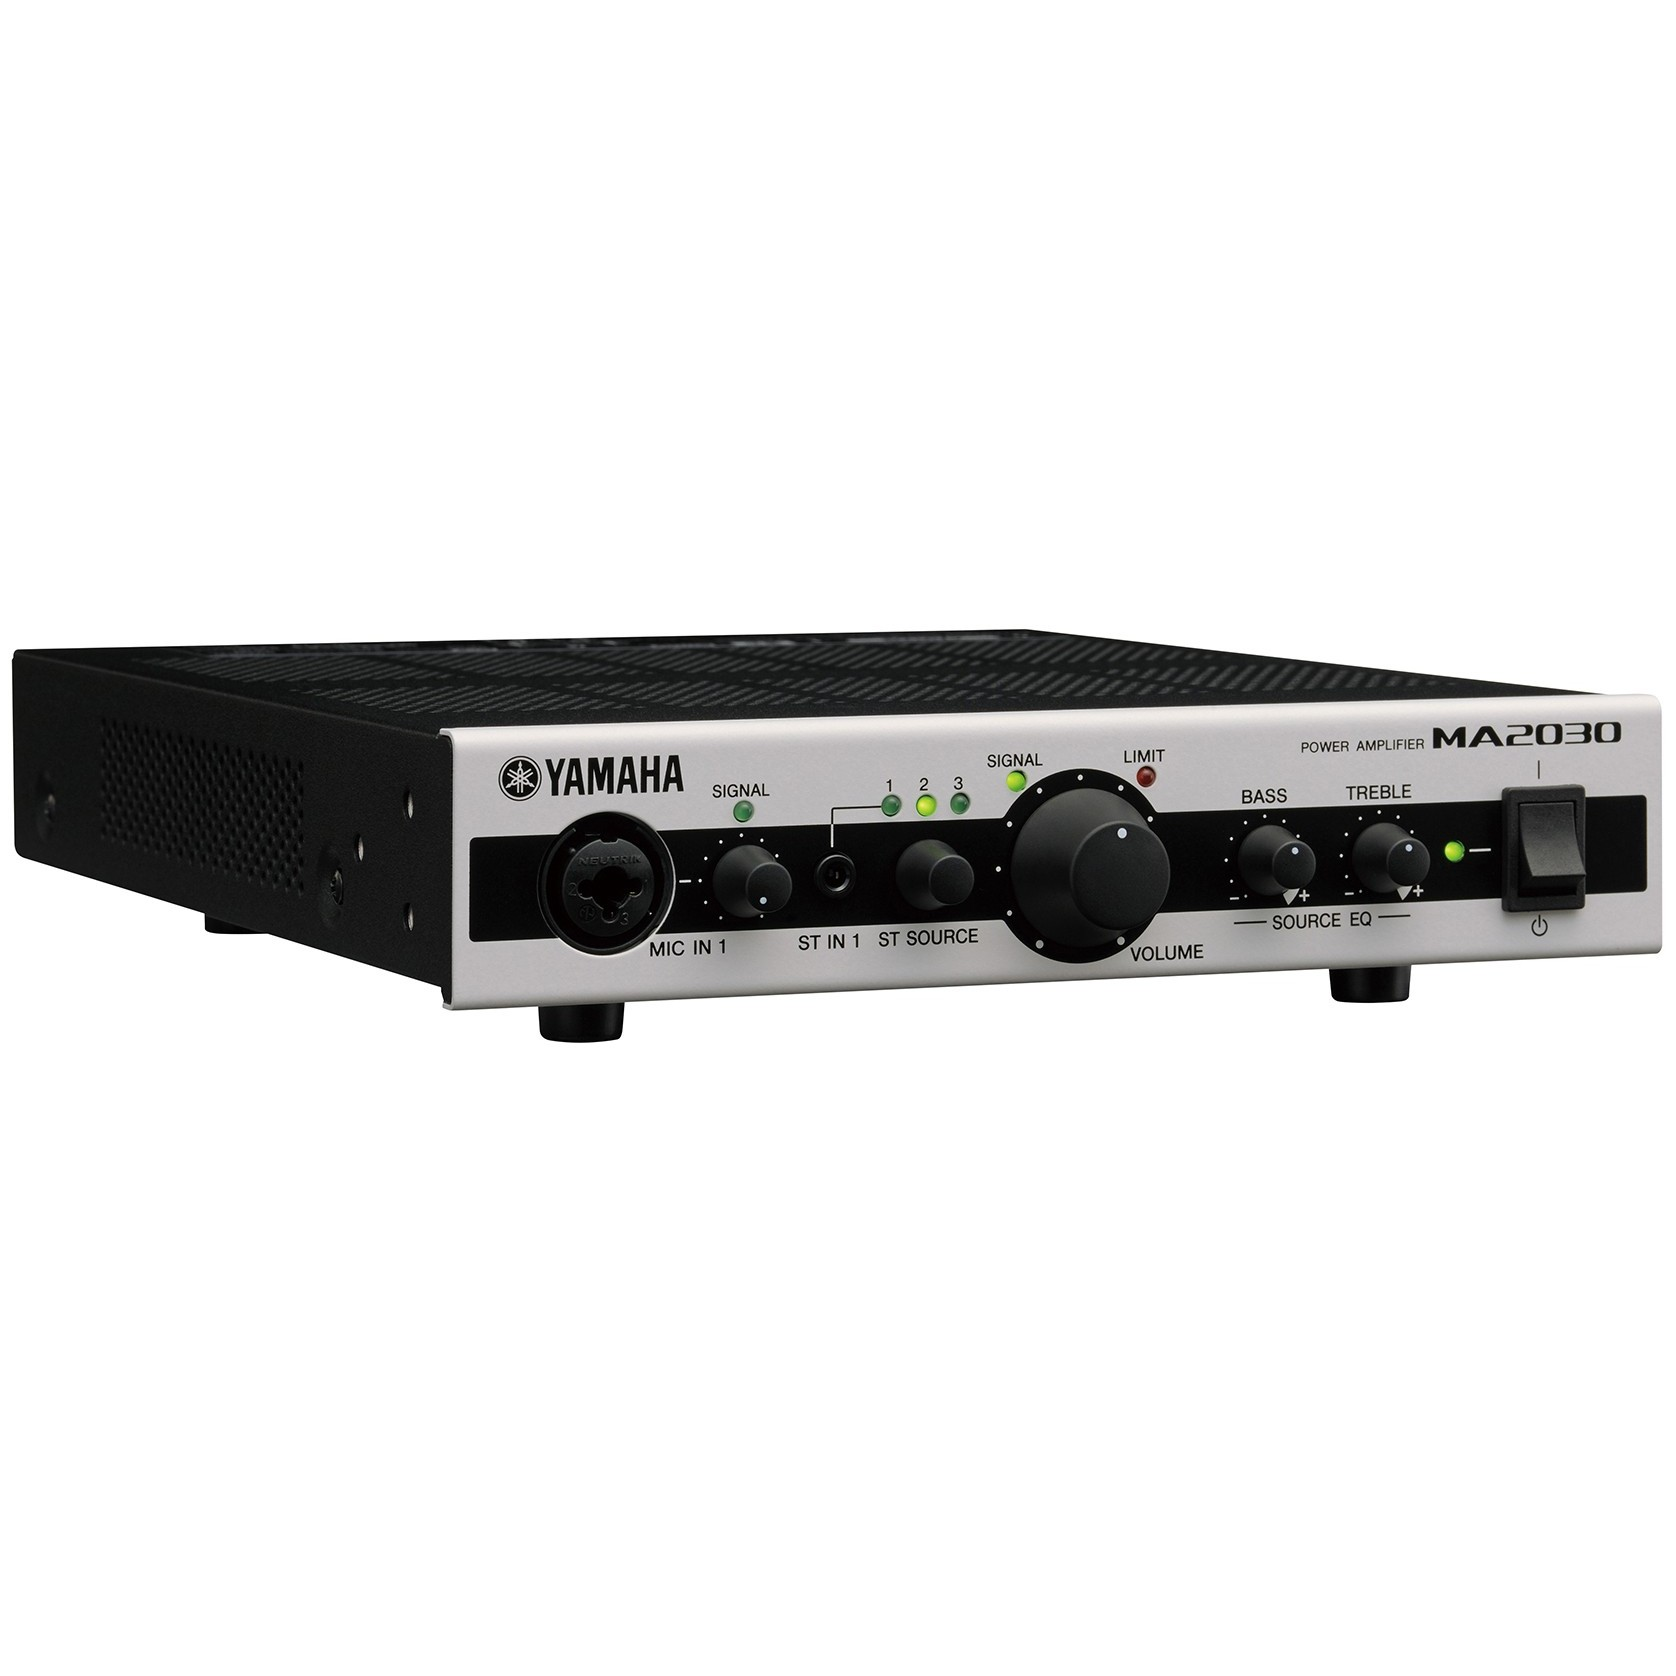 Yamaha ma2030 2 channel compact mixer amplifier 70v 100v 4 for Yamaha power amp mixer